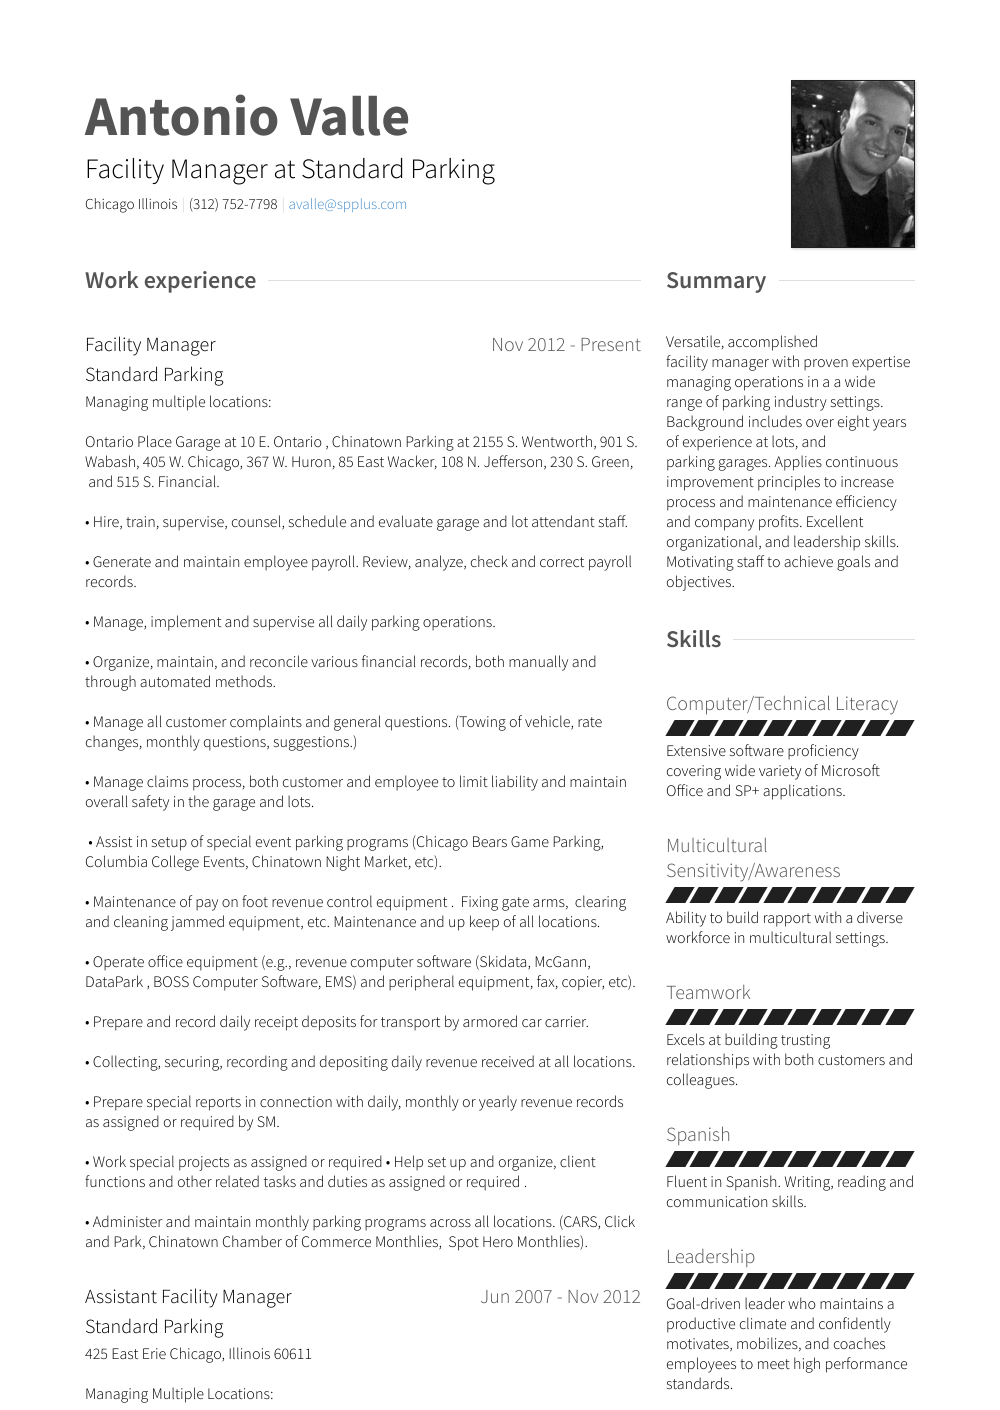 how to write work experience in resume examples